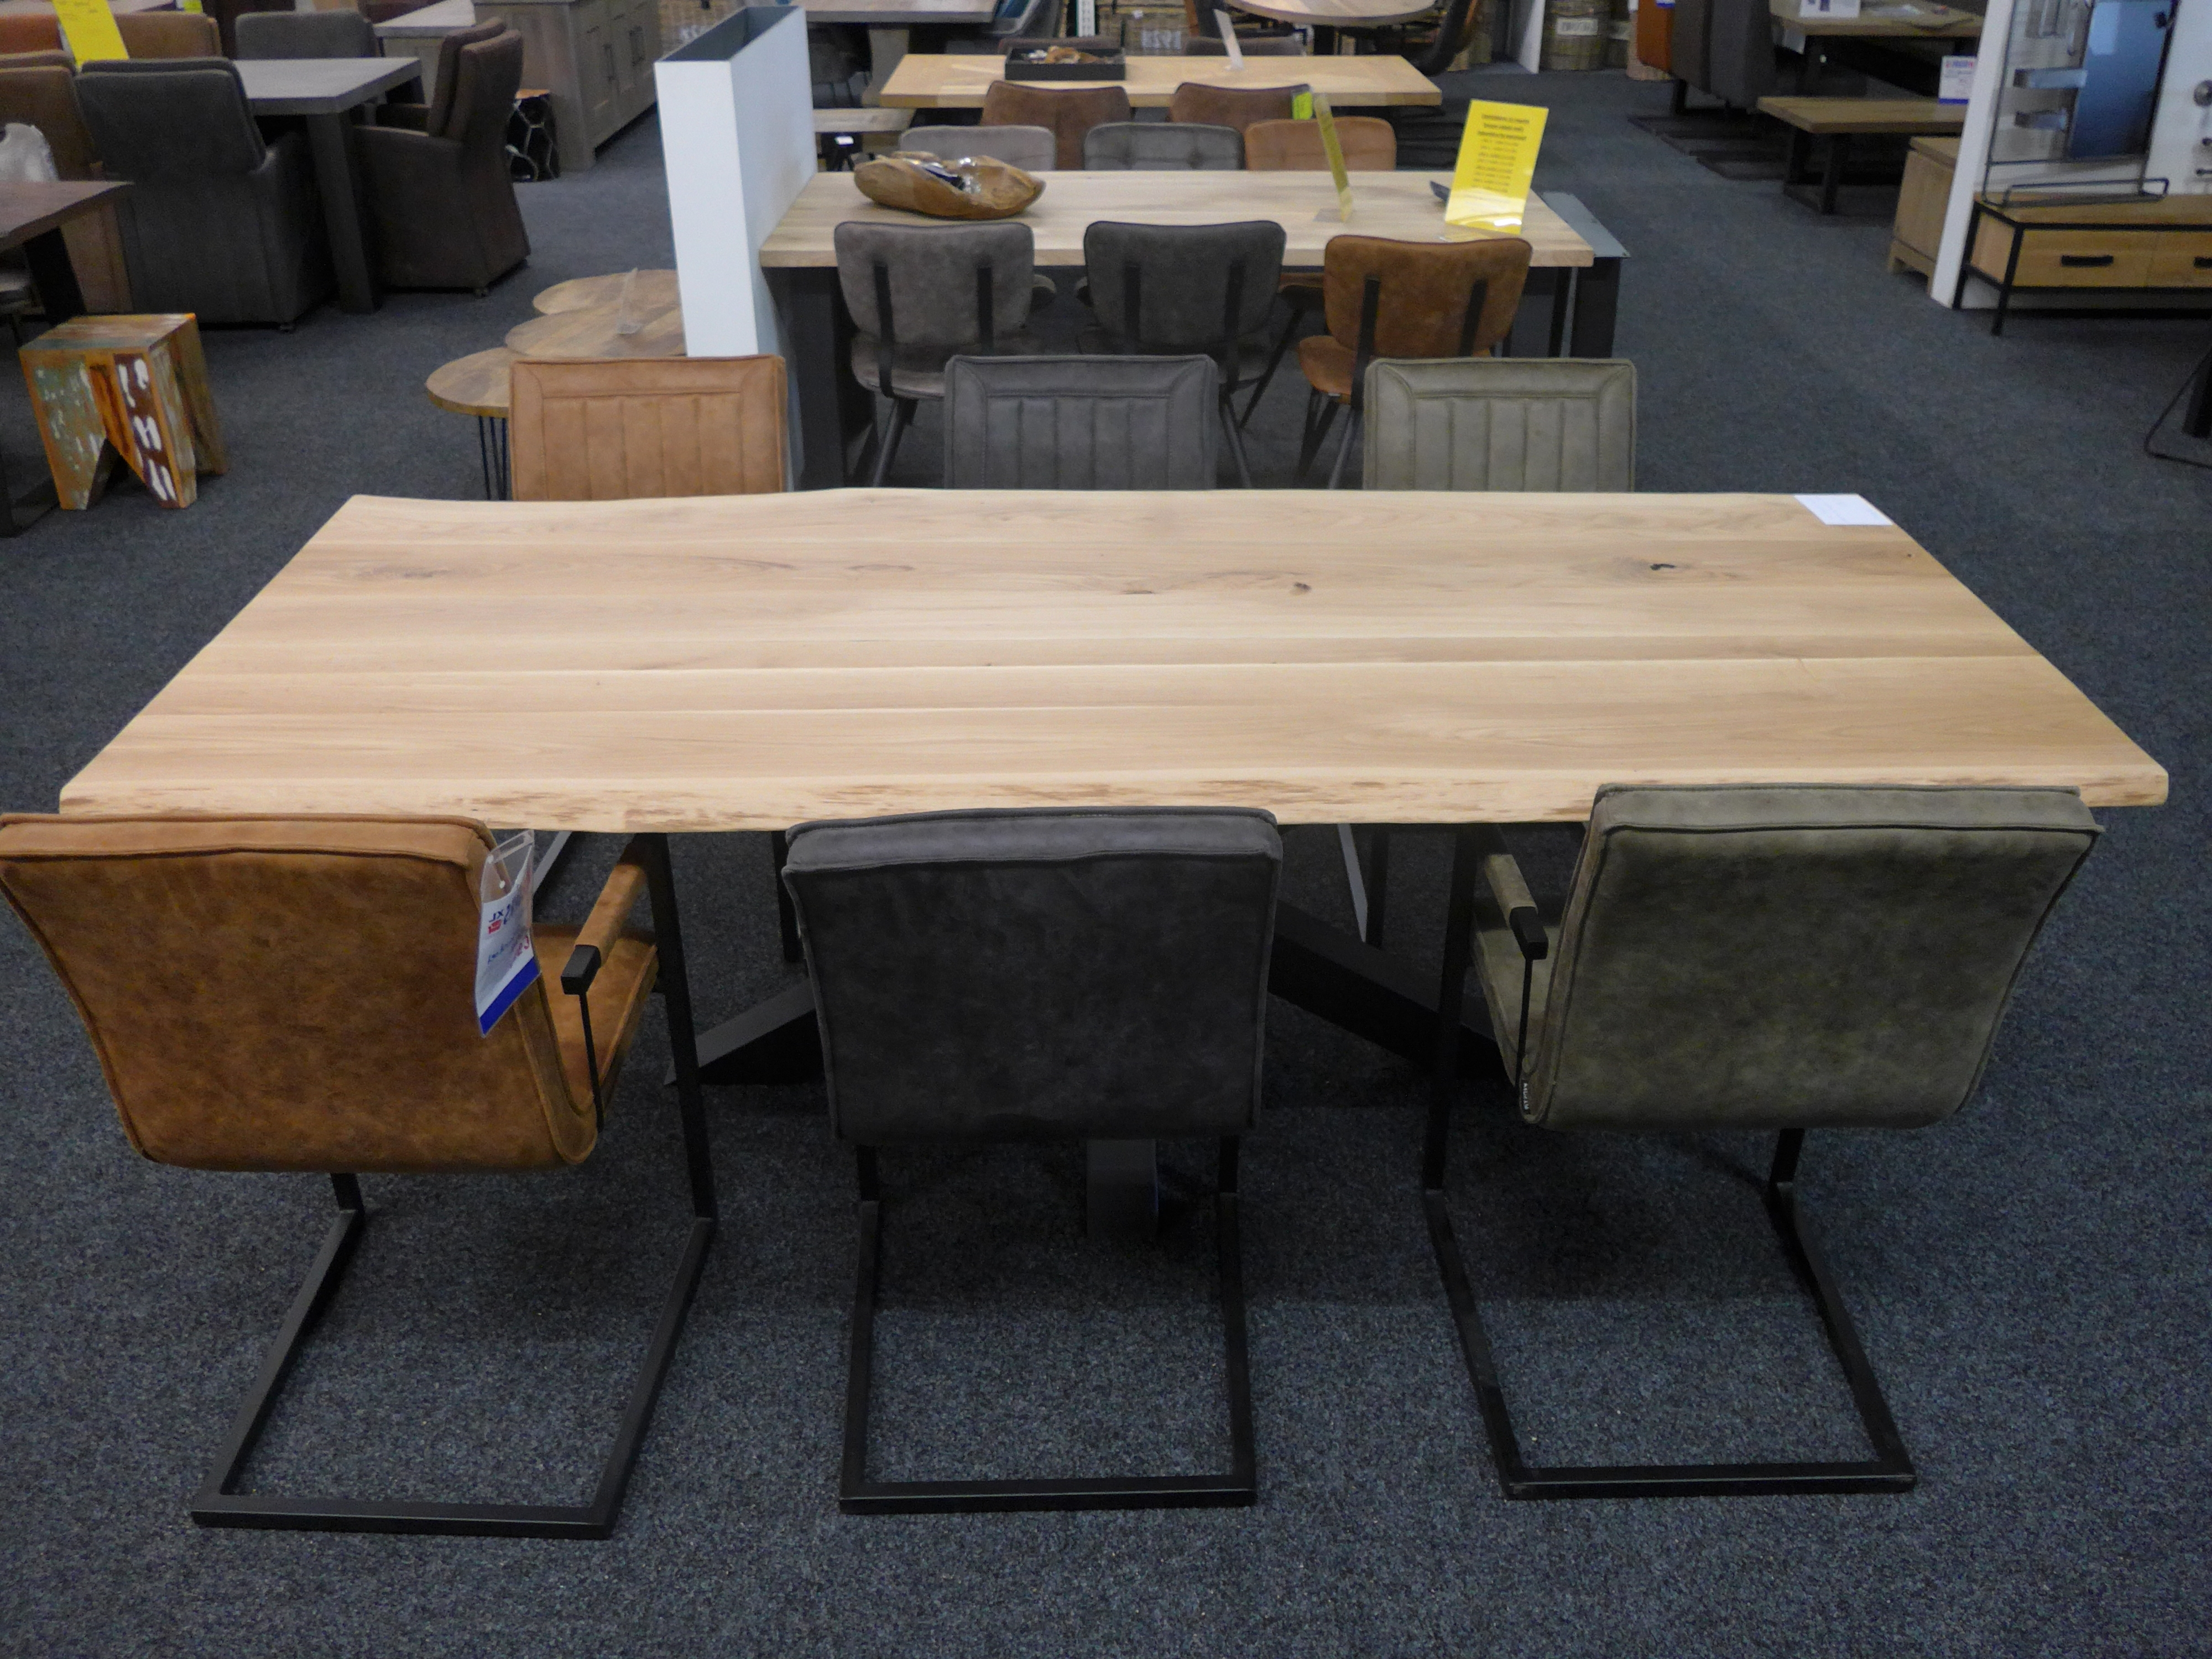 Tree Dining Tables Throughout Well Liked Dining Table Oak Tree Leaf – Cheap And In Various Types And Sizes (View 20 of 25)